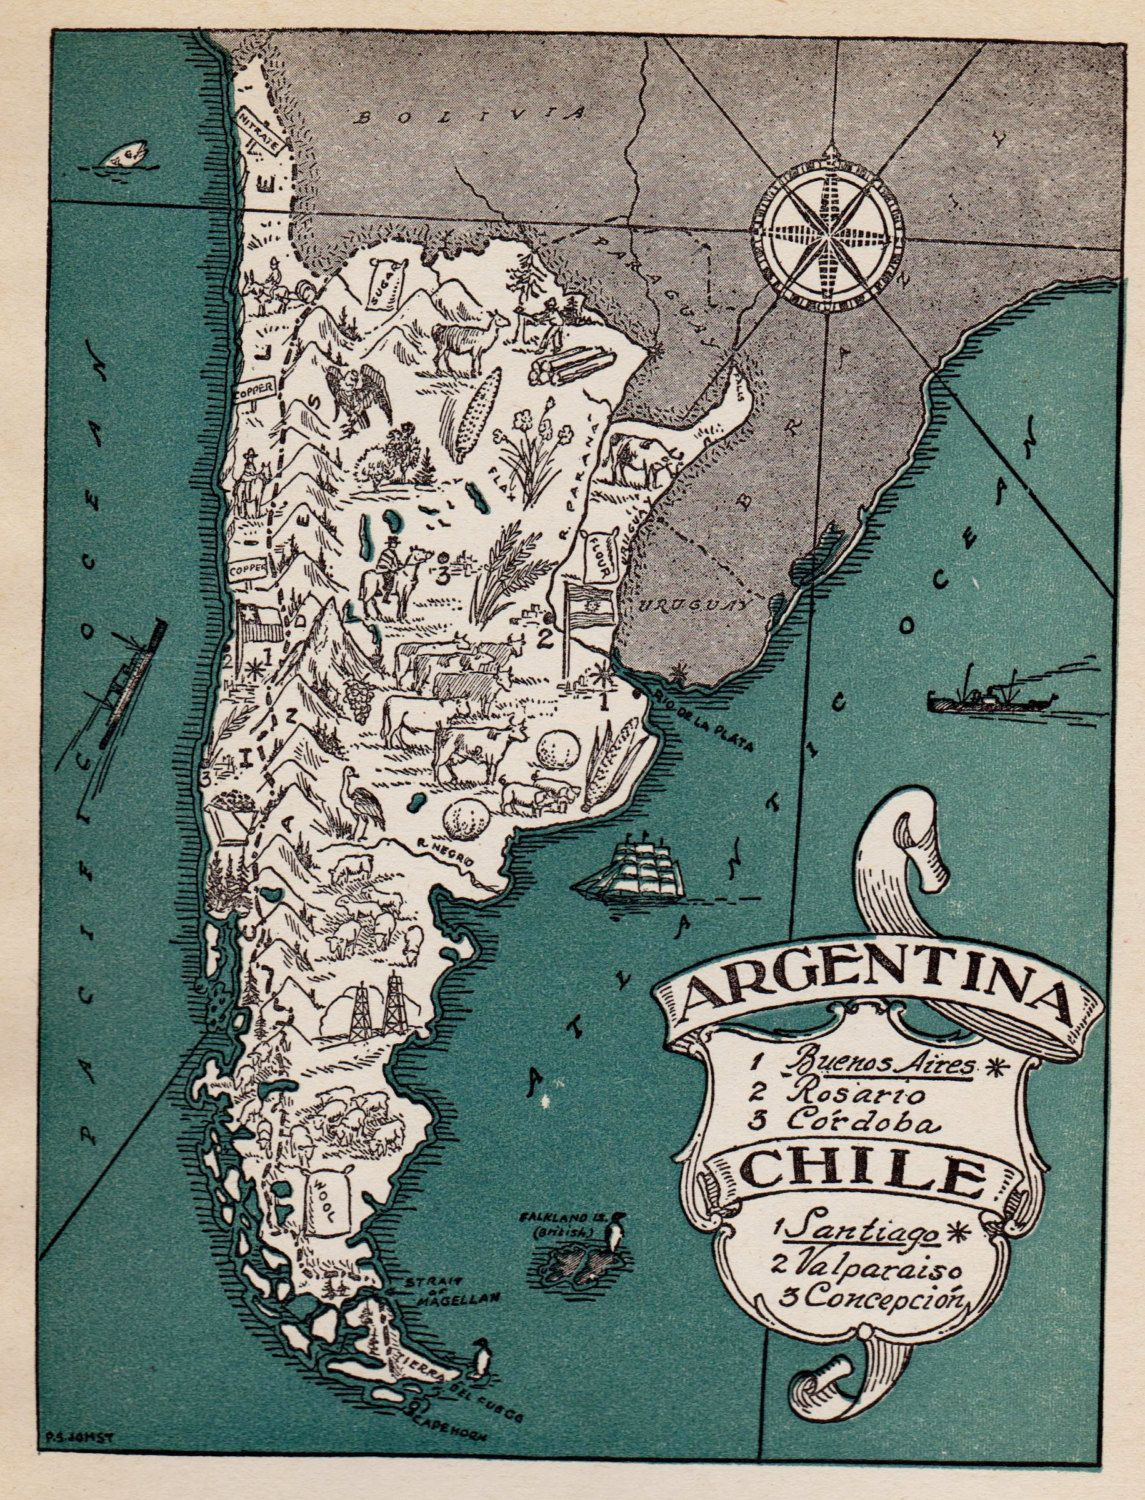 Chile Location On World Map%0A Charming ARGENTINA Map and Chile Map Gallery Wall Art WHIMSICAL Vintage   s  Picture Map Plaindealing